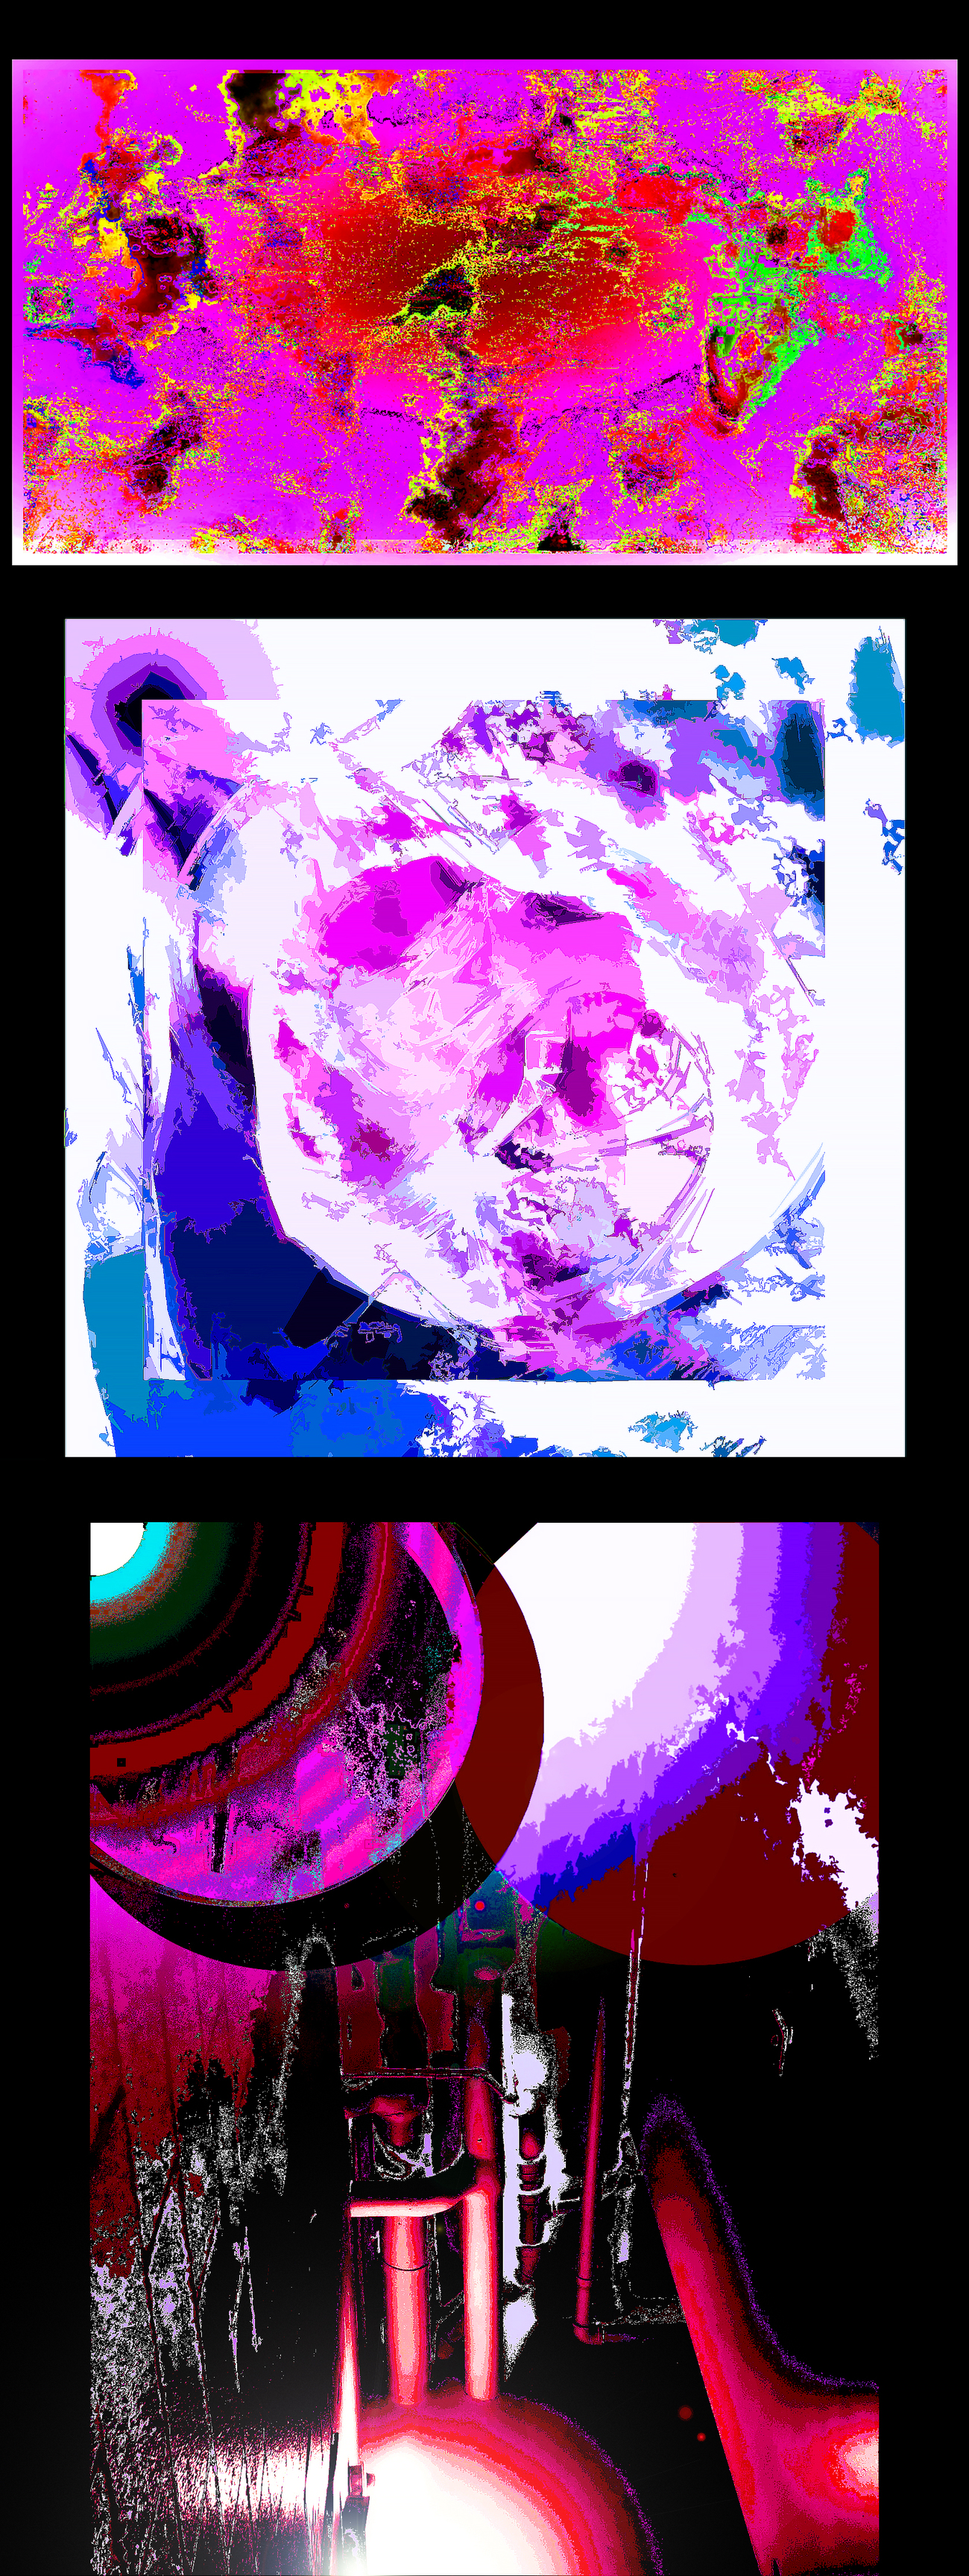 3 Abstracts for Steve2 by anahata.c